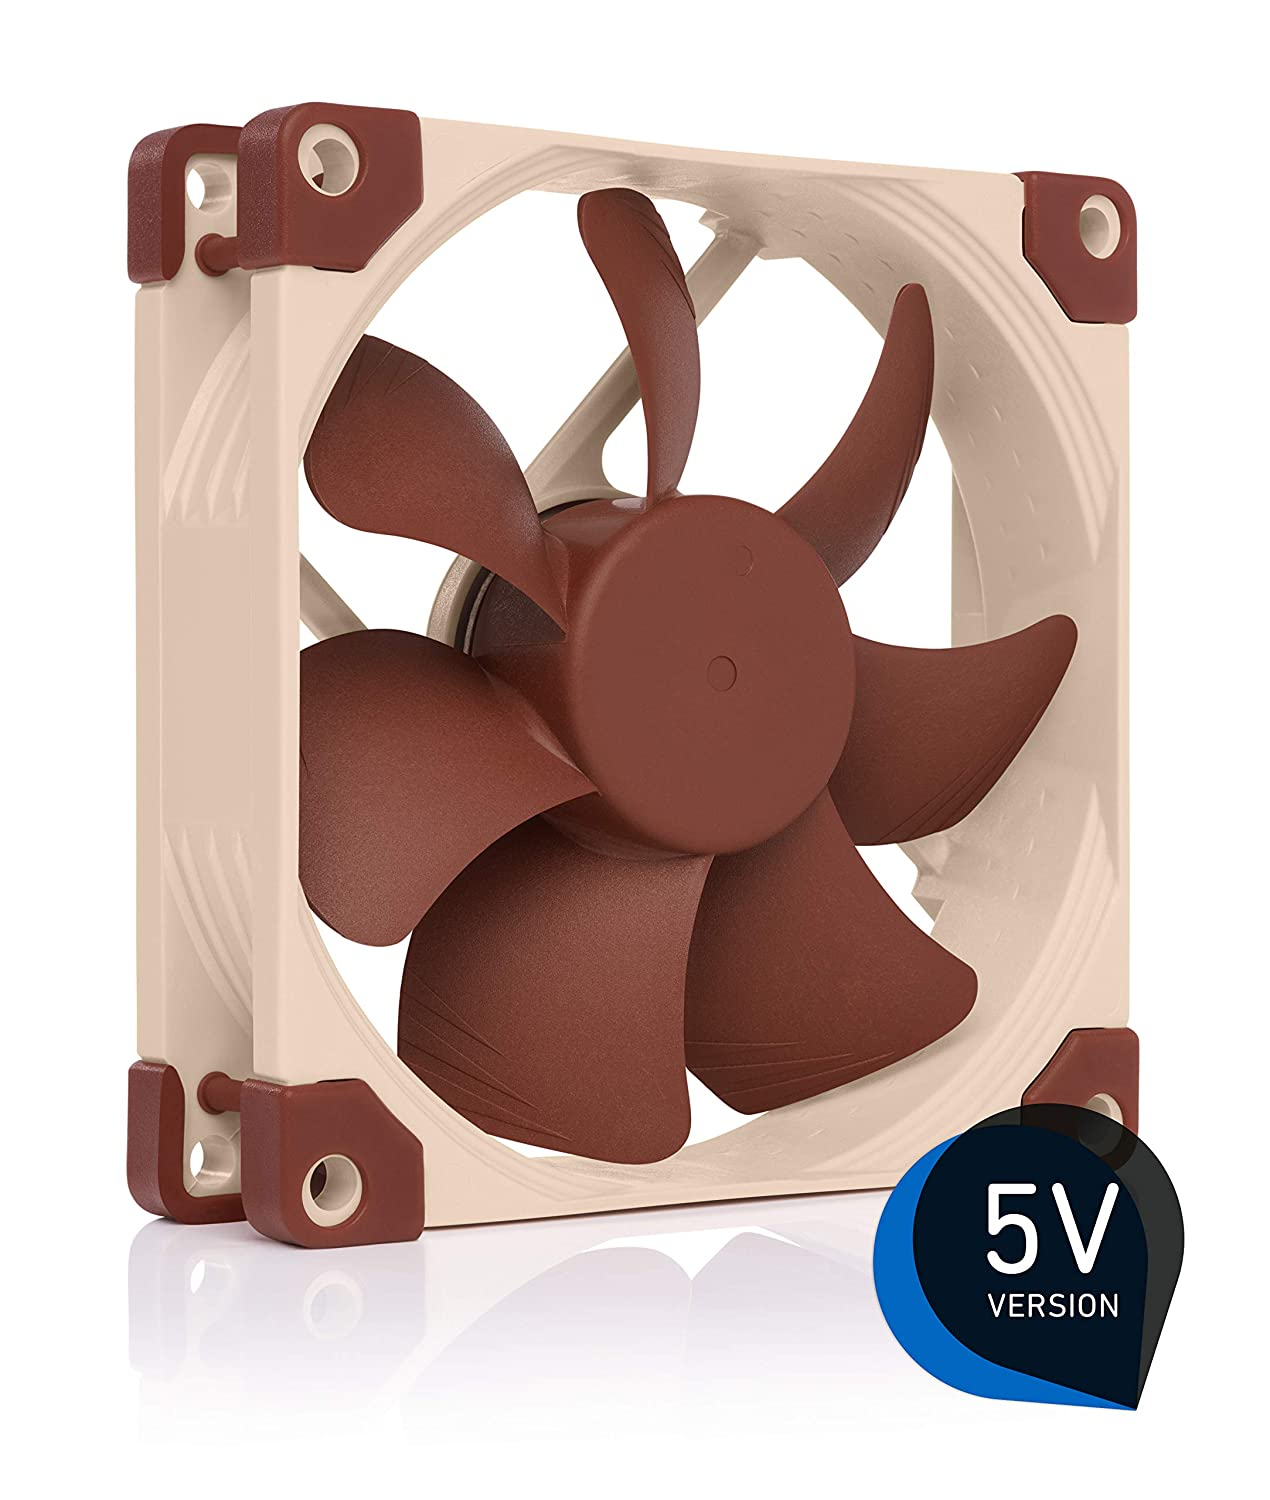 Noctua NF-A9 5V, Premium Quiet Fan with USB Power Adaptor Cable, 3-Pin, 5V Version (92mm, Brown)